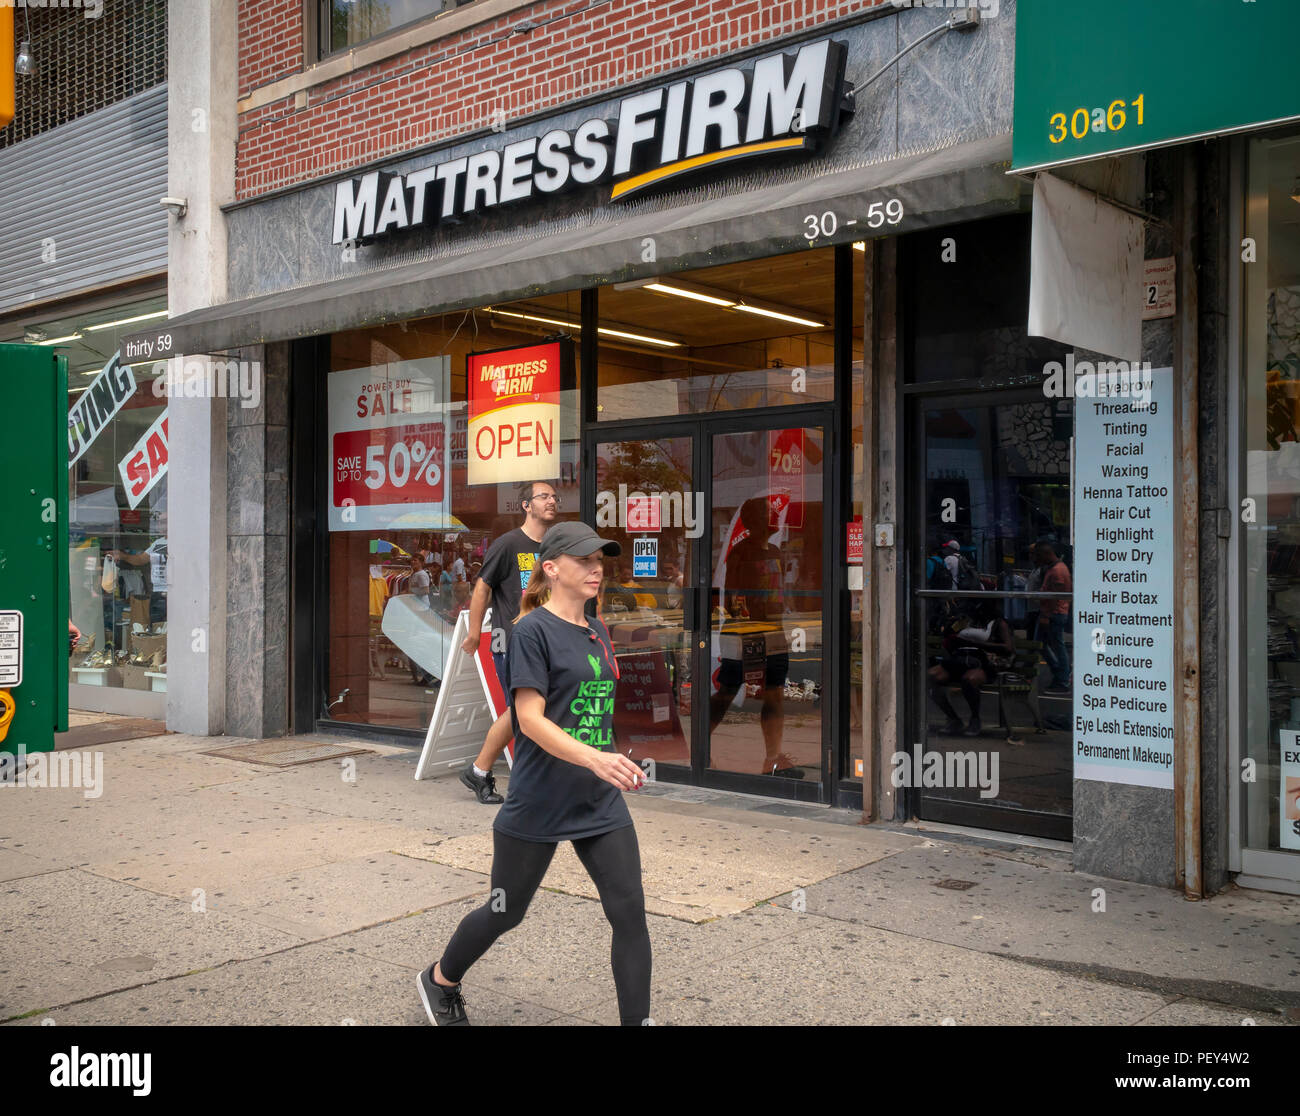 A Mattress Firm store in the Astoria neighborhood of Queens in New York on Sunday, August 12, 2018. Mattress Firm has recently announced that it is exploring bankruptcy options to exit store leases so it can shutter unprofitable locations. (© Richard B. Levine) - Stock Image